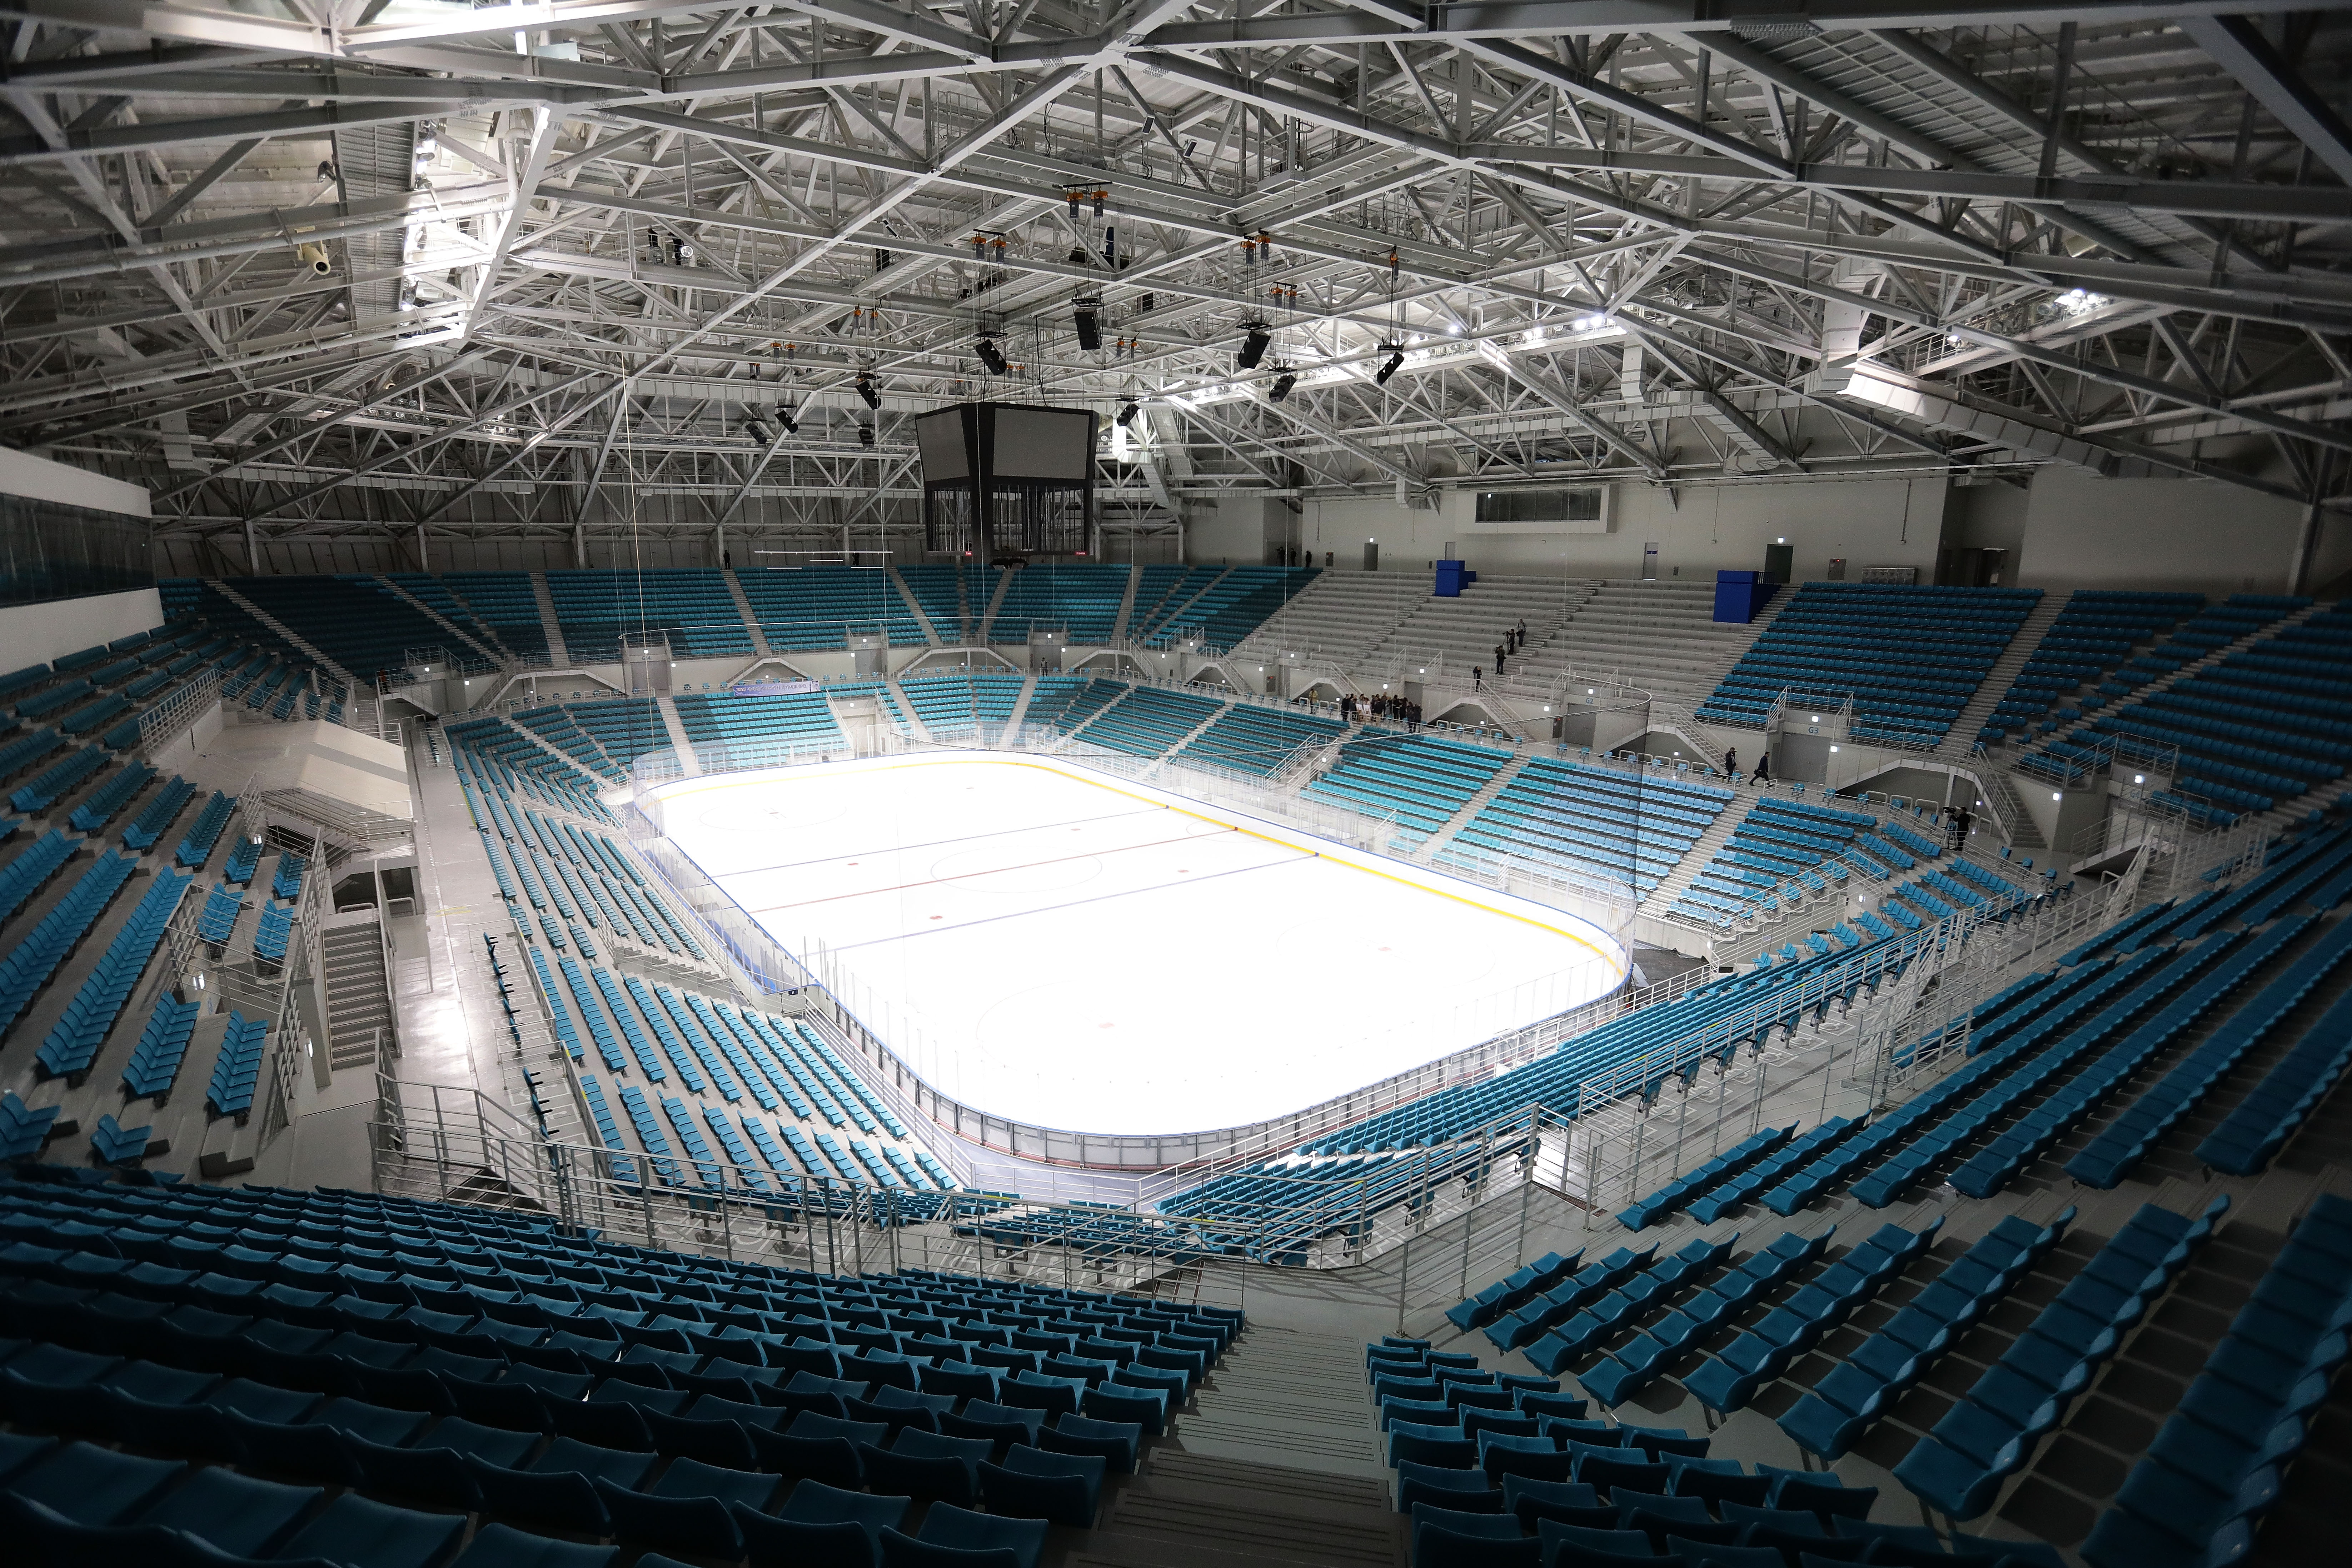 A general view of the Gangneung Hockey Centre, Ice Hockey venue for the PyeongChang 2018 Winter Olympic Games.